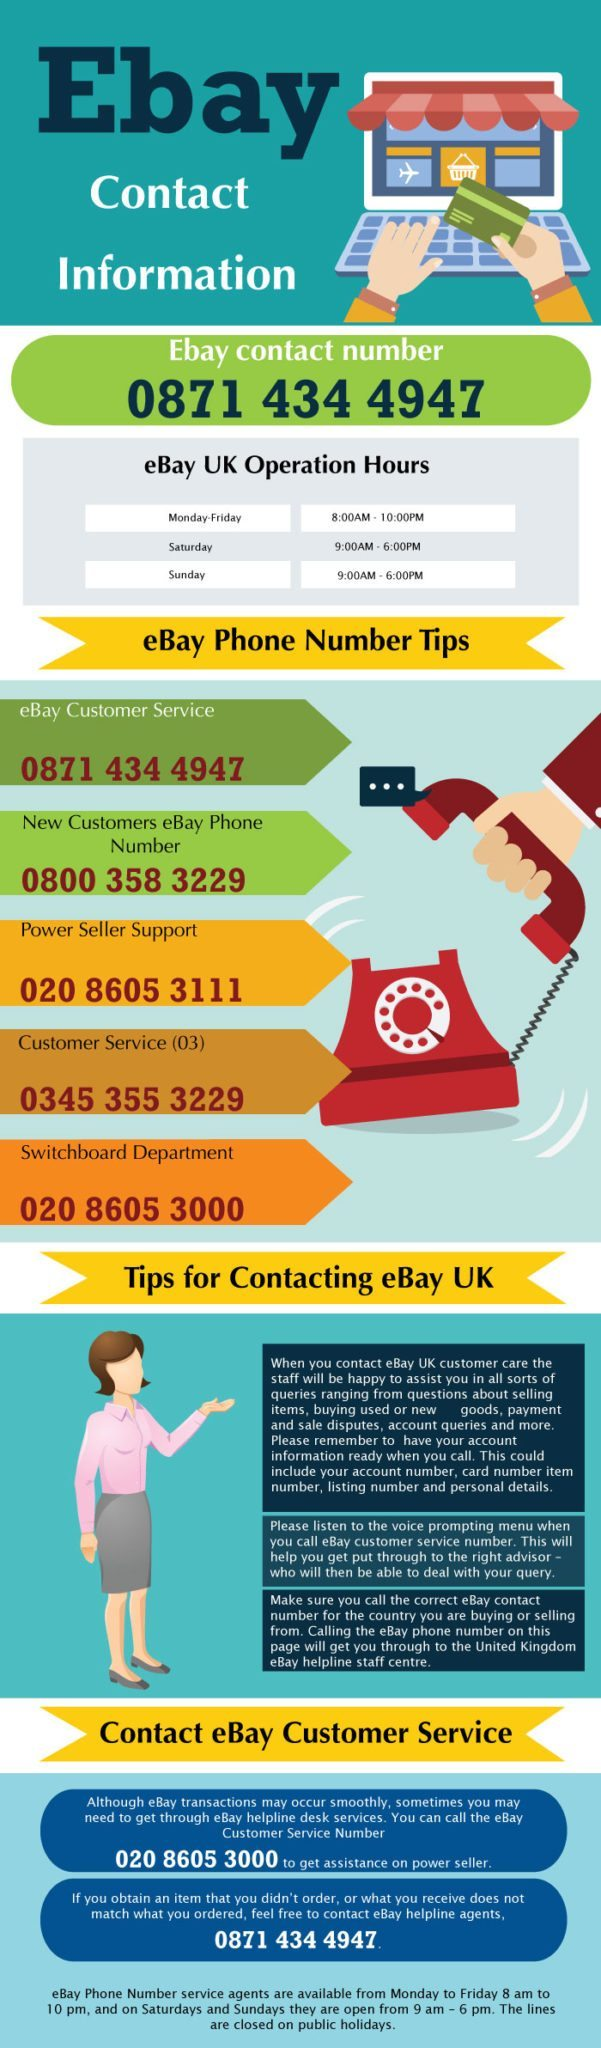 Ebay Customer Service 0025299011075 Phone Numberuk